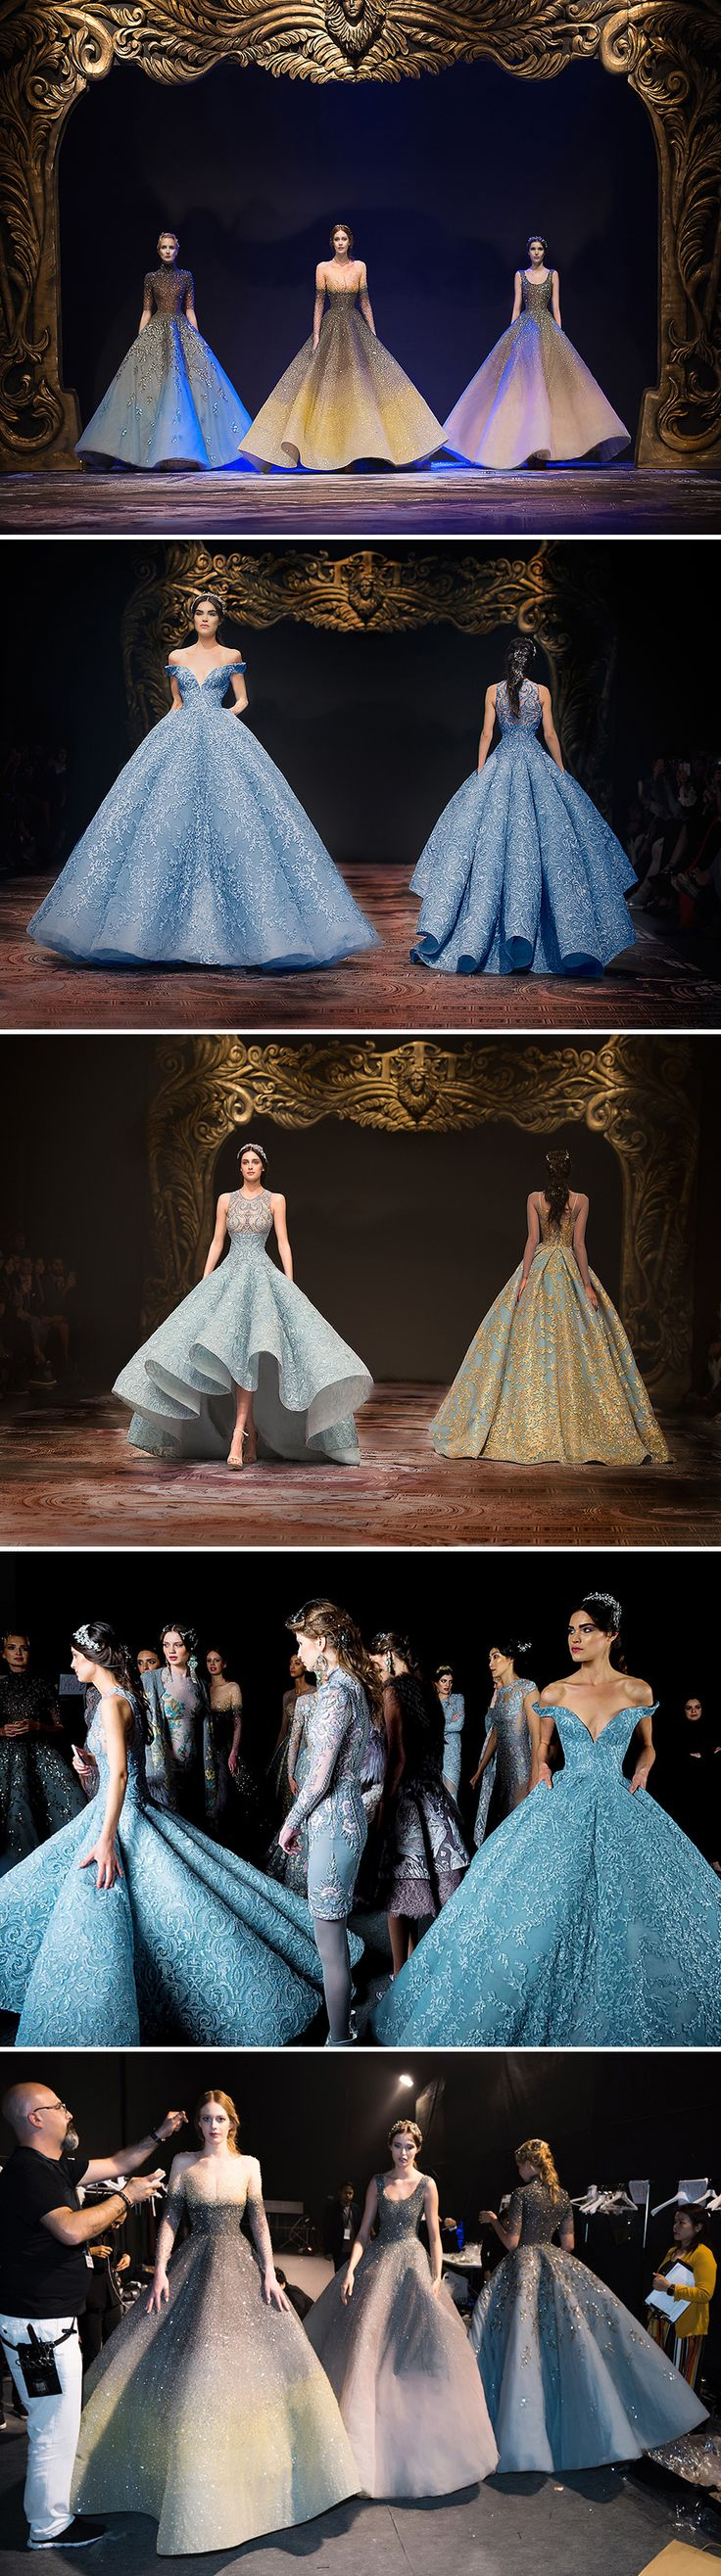 The classic Cinderella Ballroom cut blue one!!! (2nd and 4th pics) And the gold and turquoise one